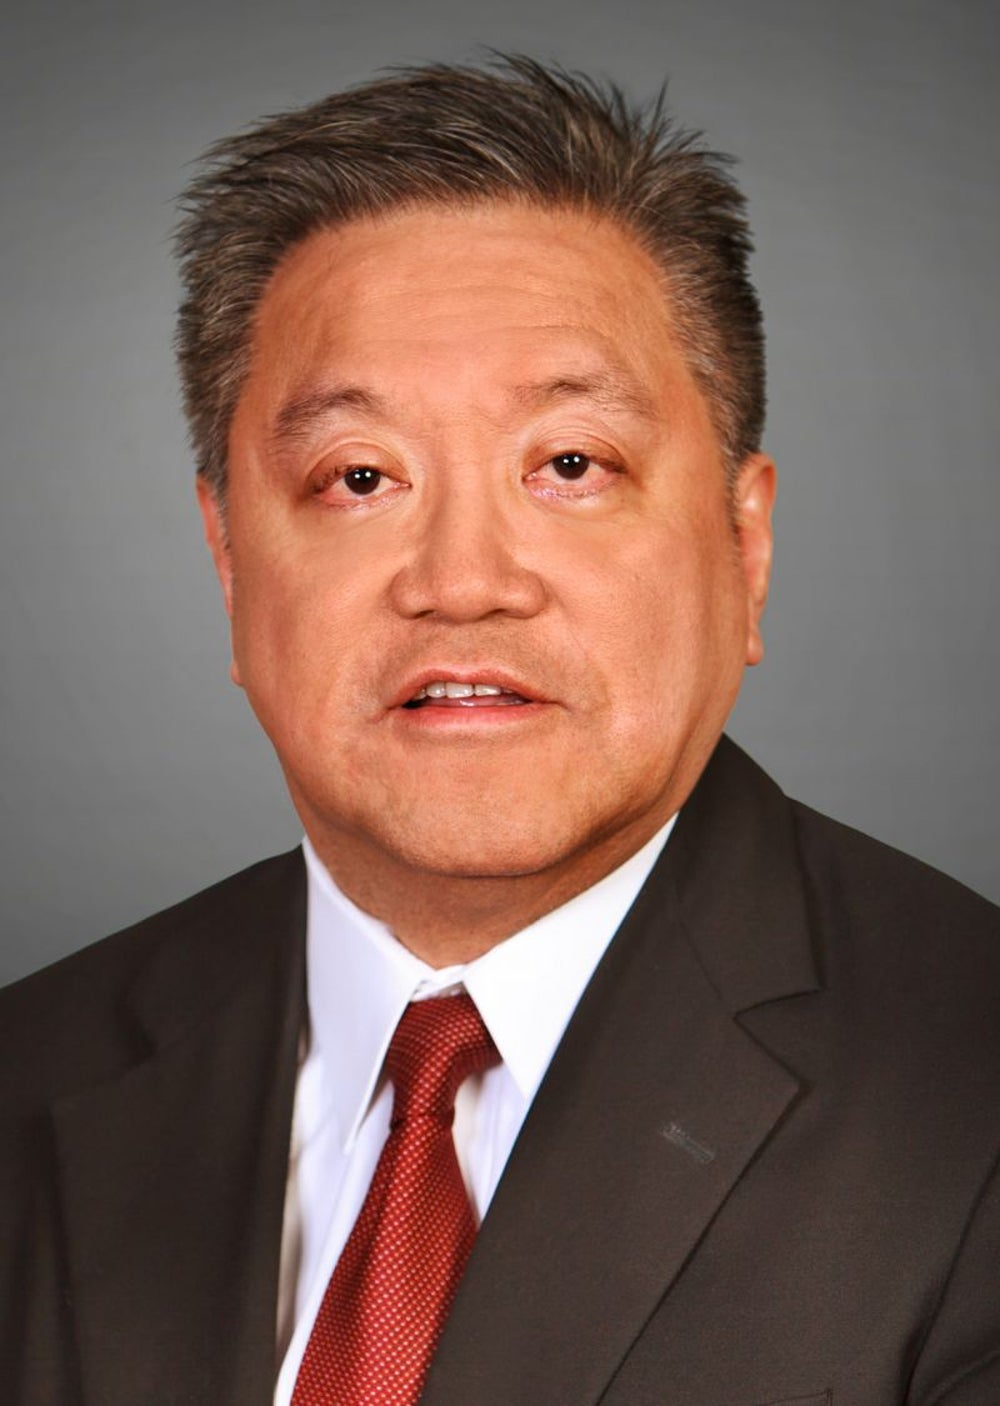 Hock Tan, CEO of Broadcom -- $24.7 million